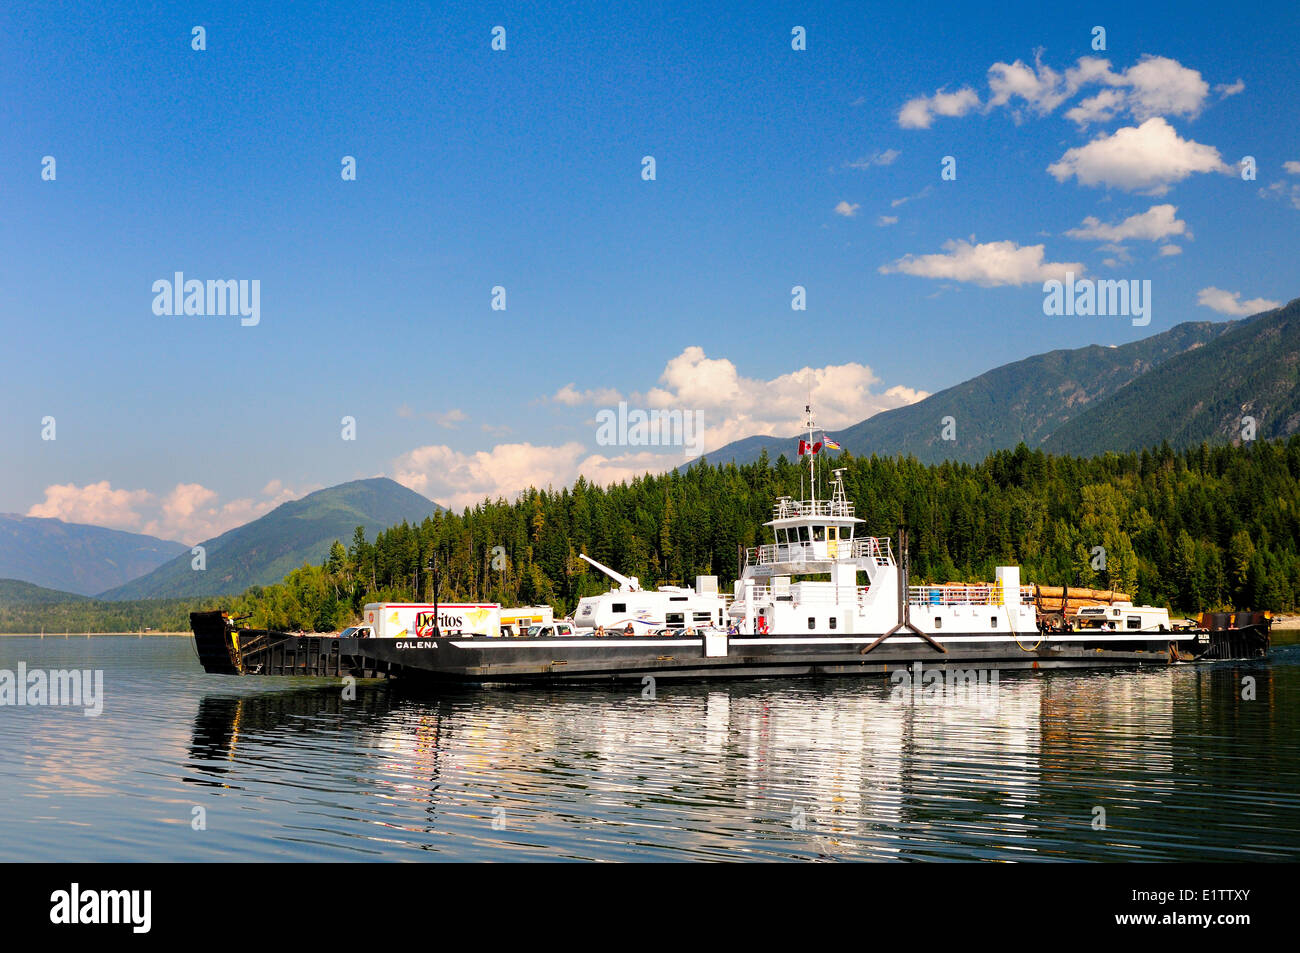 The ferry, D.E.V. Galena, leaves Galena Bay on Upper Arrow Lake on route to Shelter Bay, BC. - Stock Image